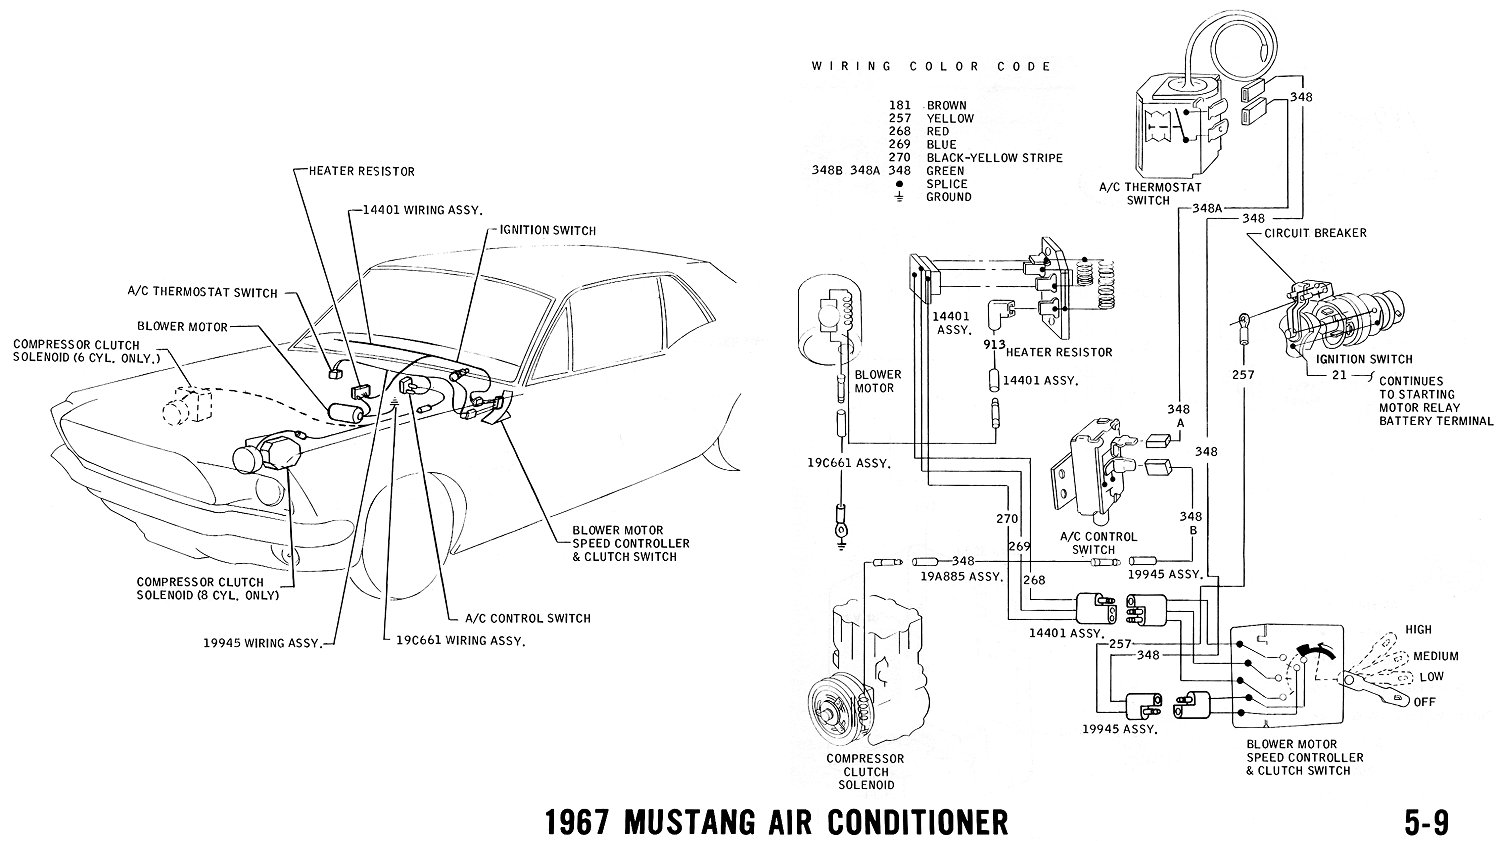 67ac 1967 mustang wiring and vacuum diagrams average joe restoration 67 cougar turn signal wiring diagram at eliteediting.co